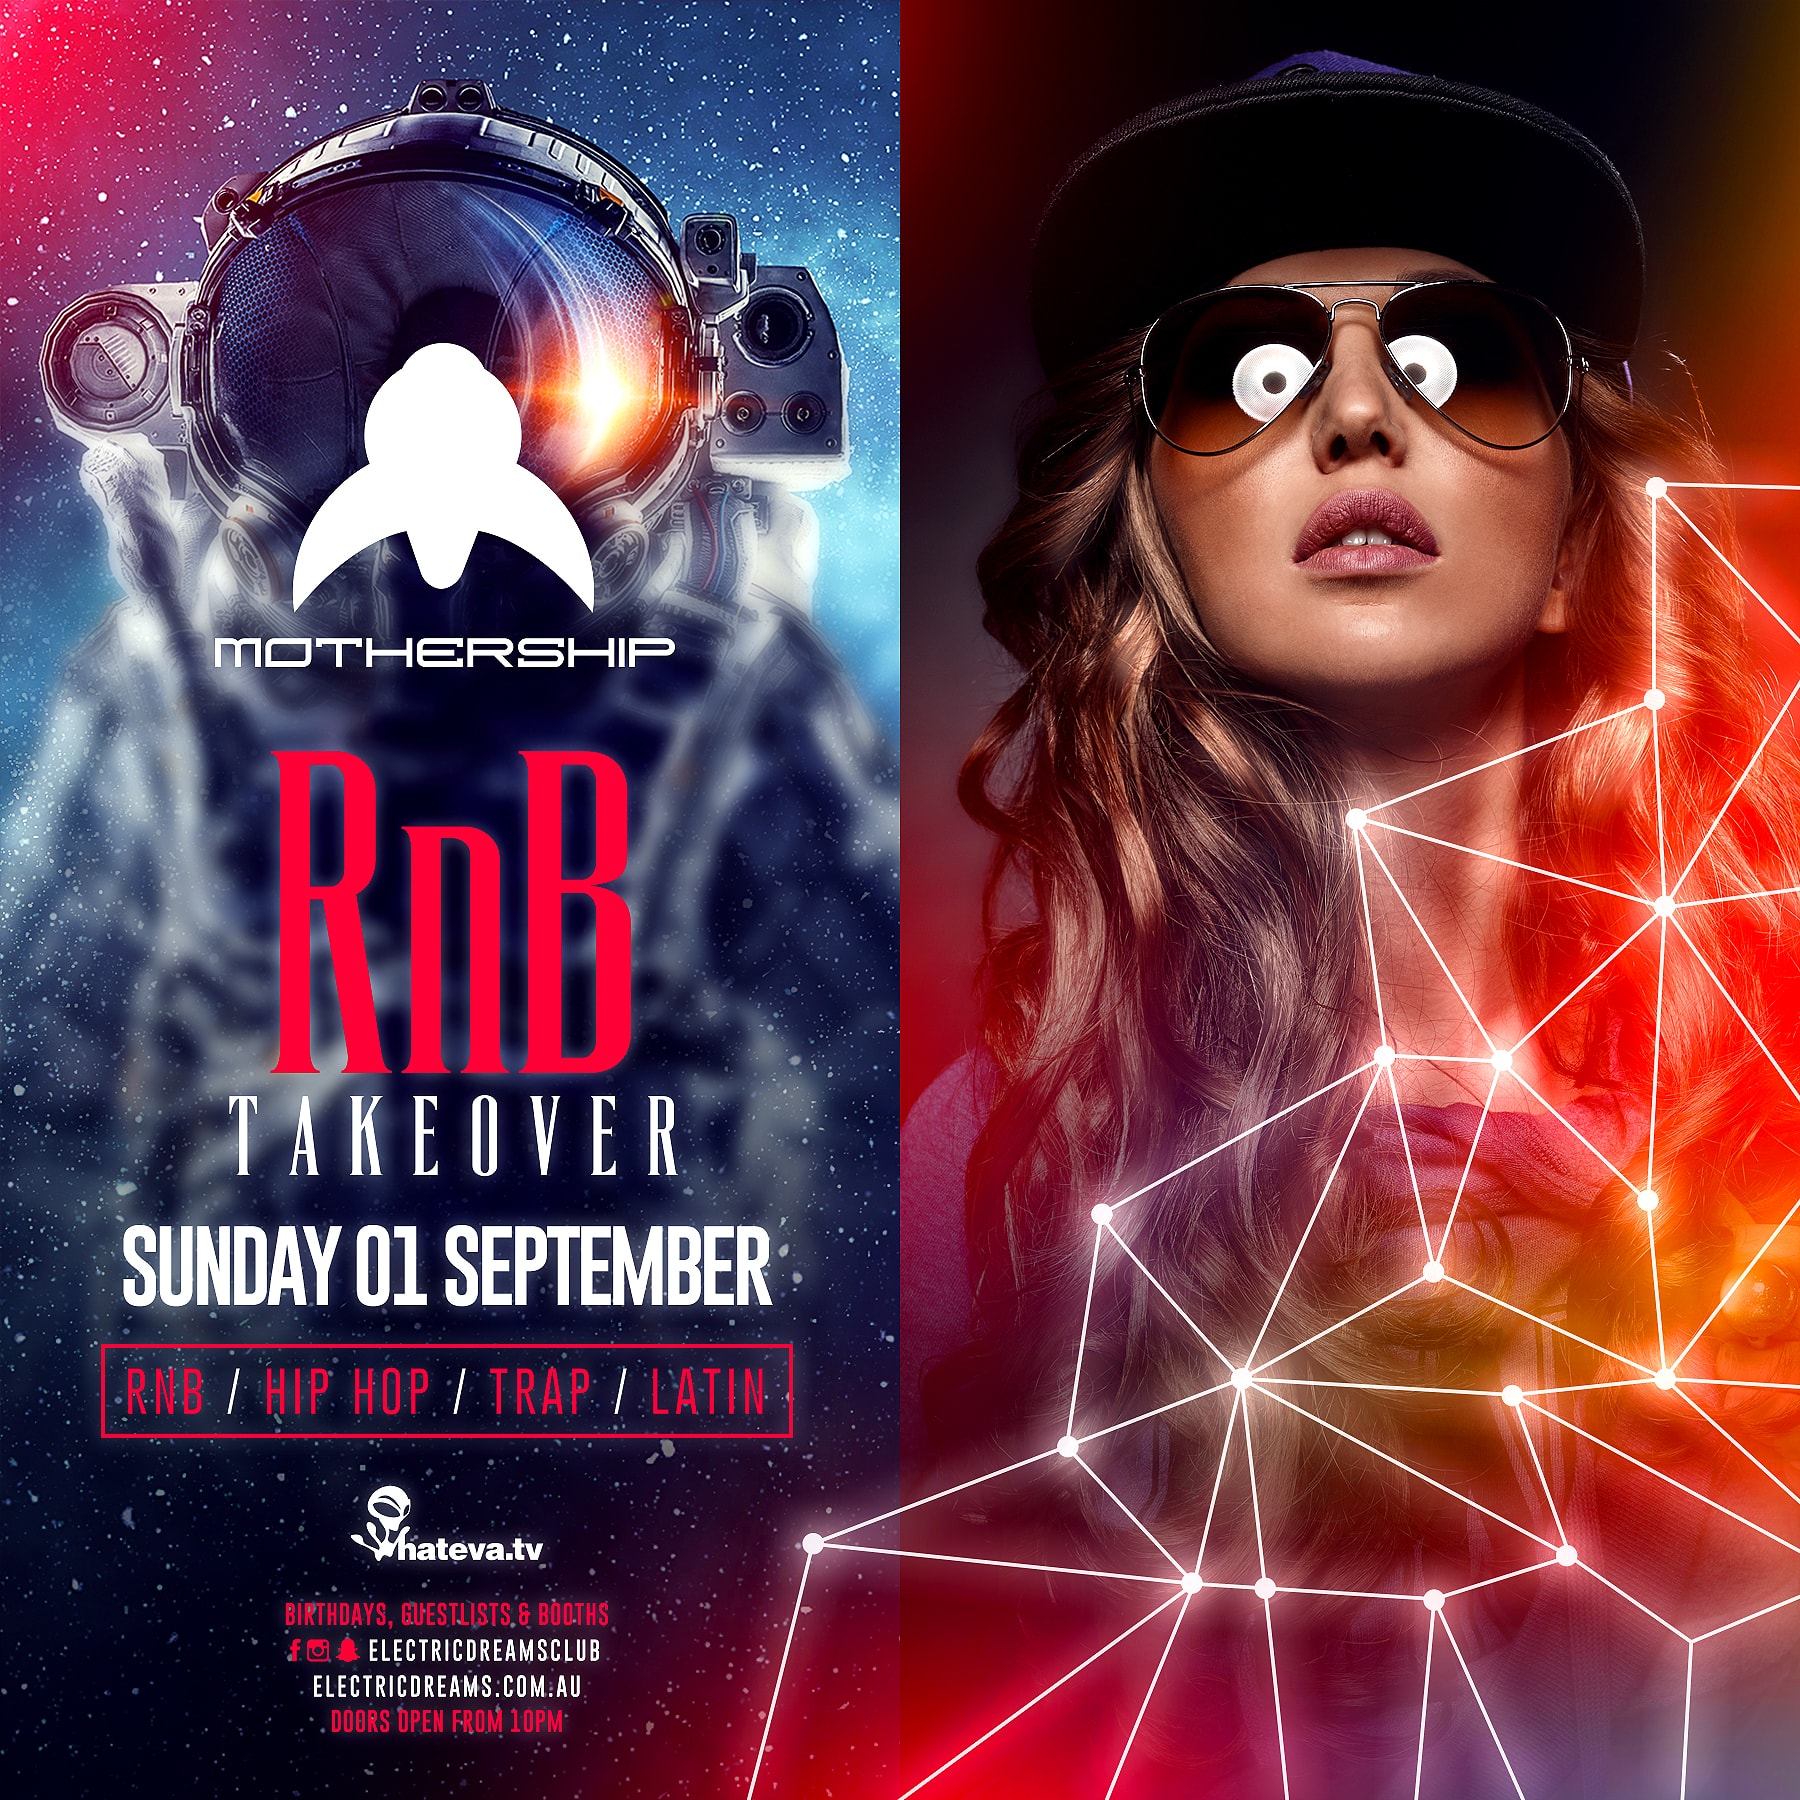 Mothership_Sept-01_RnB-Takeover-min.jpg